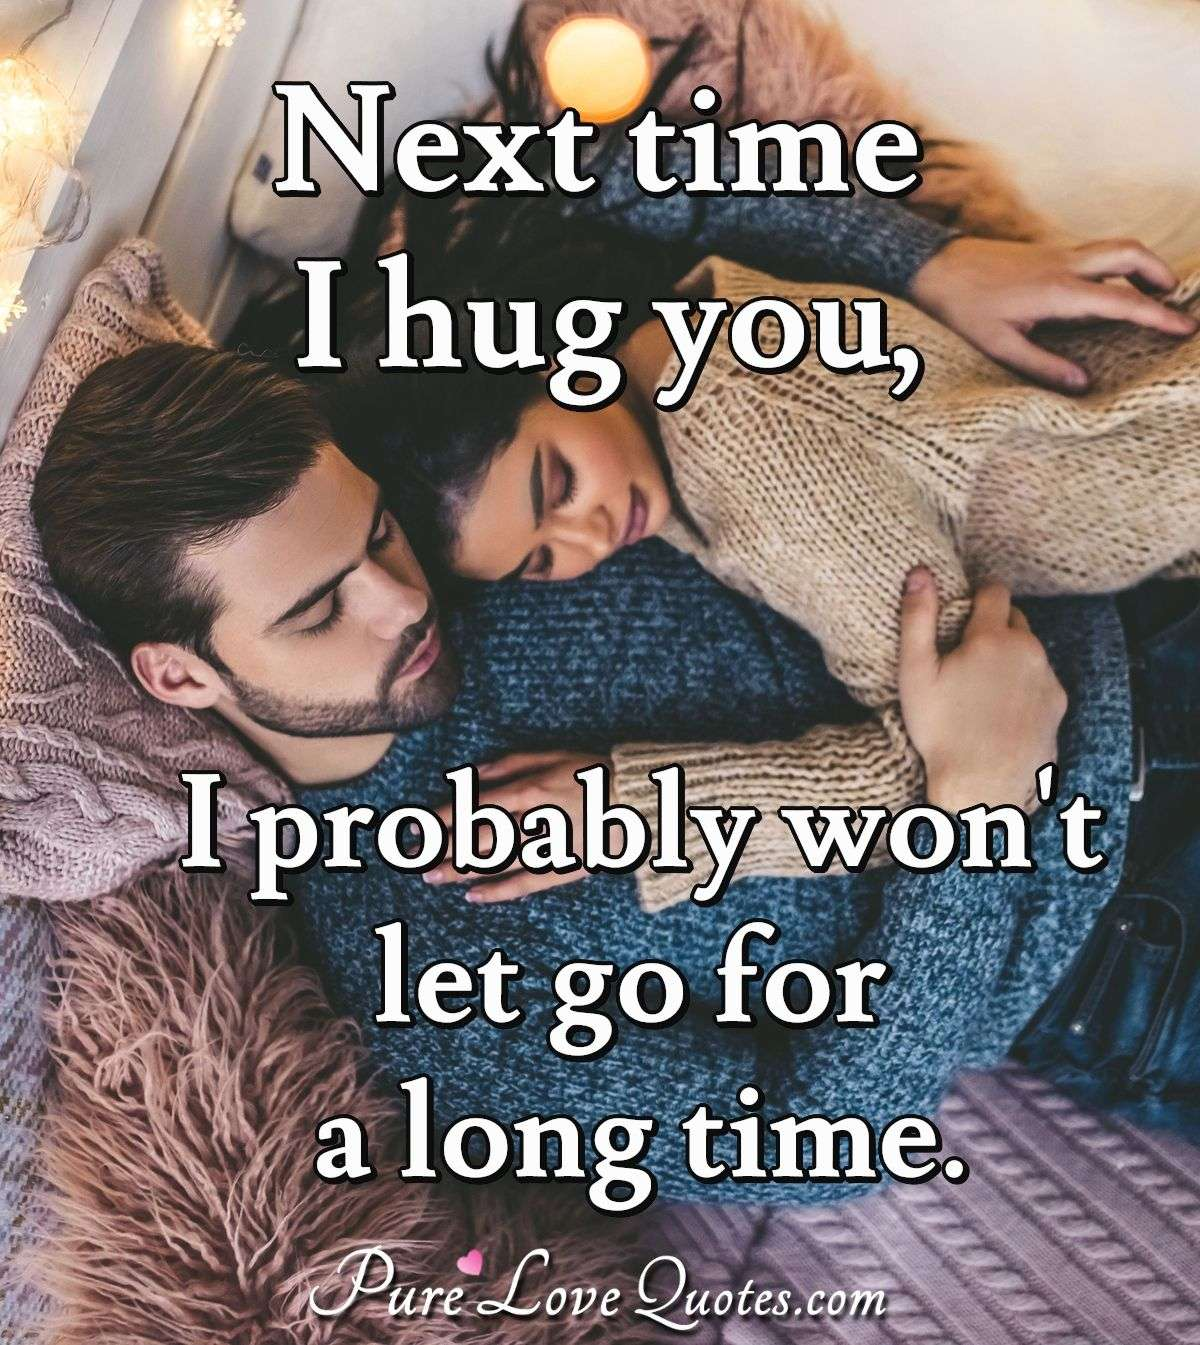 Next time I hug you, I probably won't let go for a long time. - Anonymous